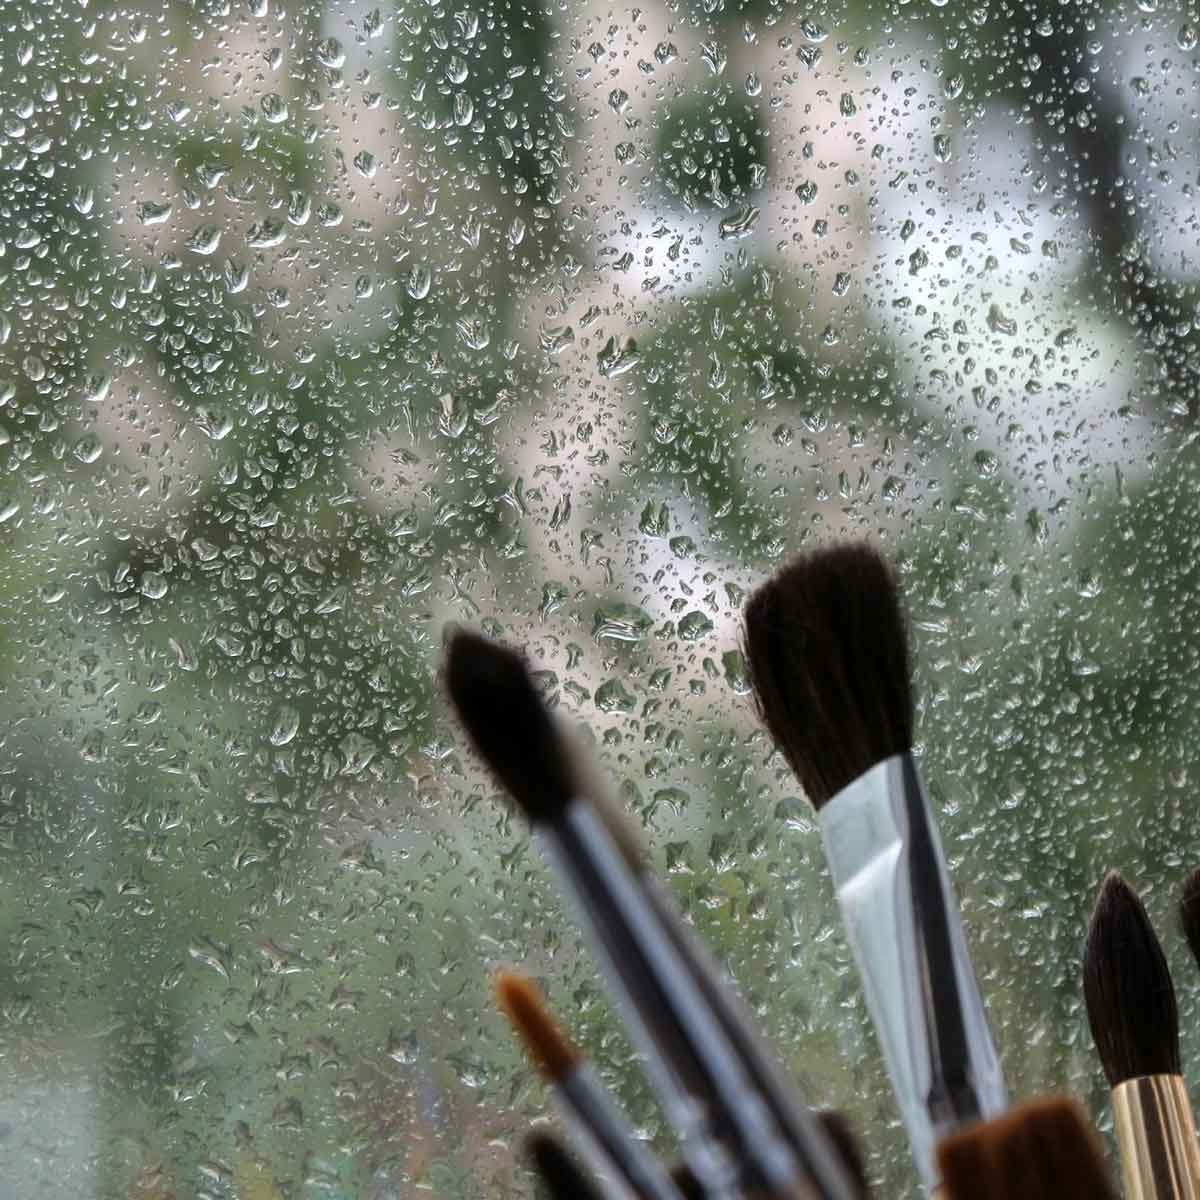 Paint brushes in a Rainy window Gettyimages 511103570